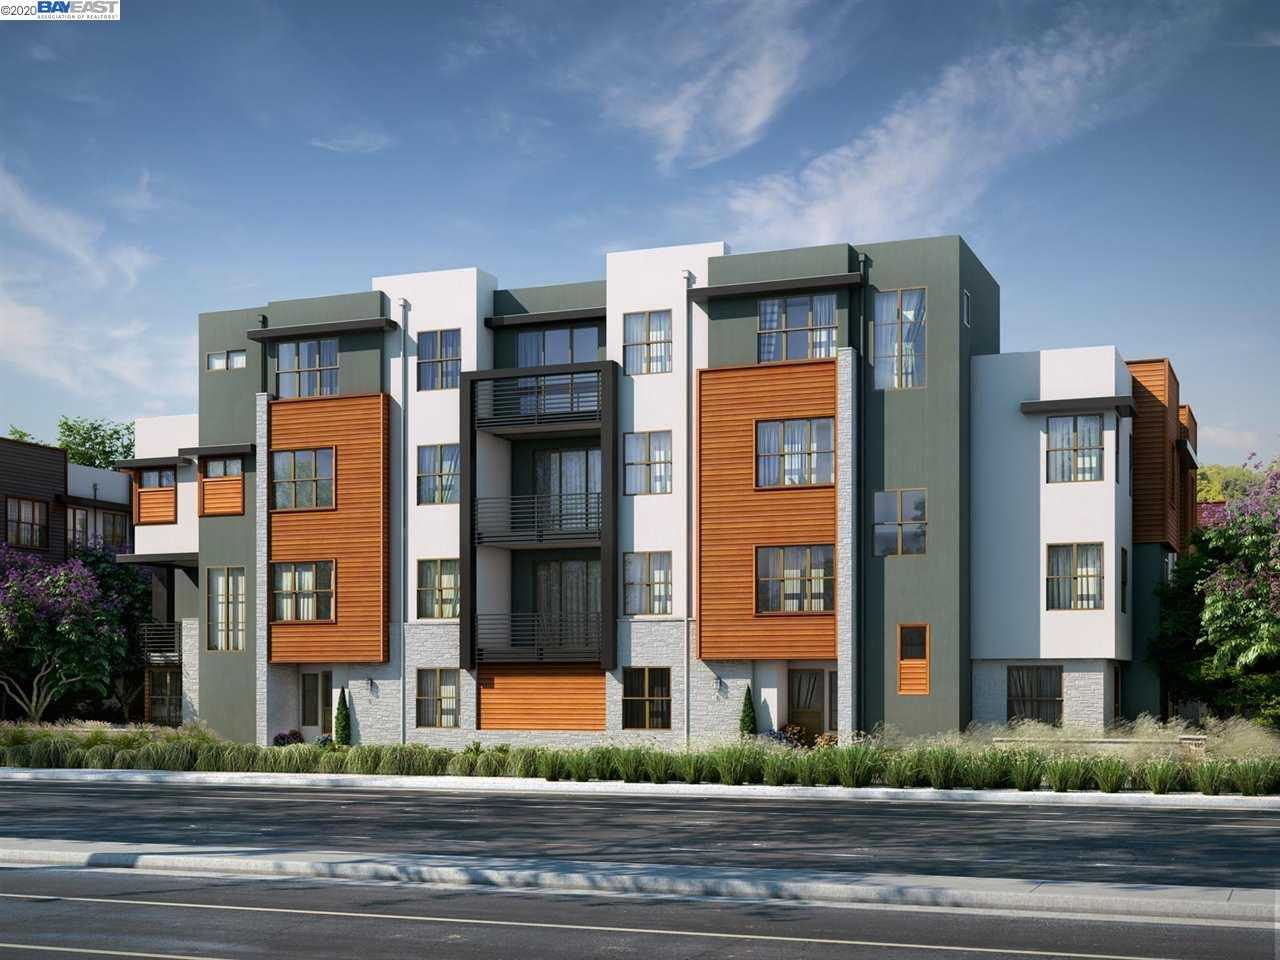 $1,019,990 - 4Br/4Ba -  for Sale in Not Listed, Dublin